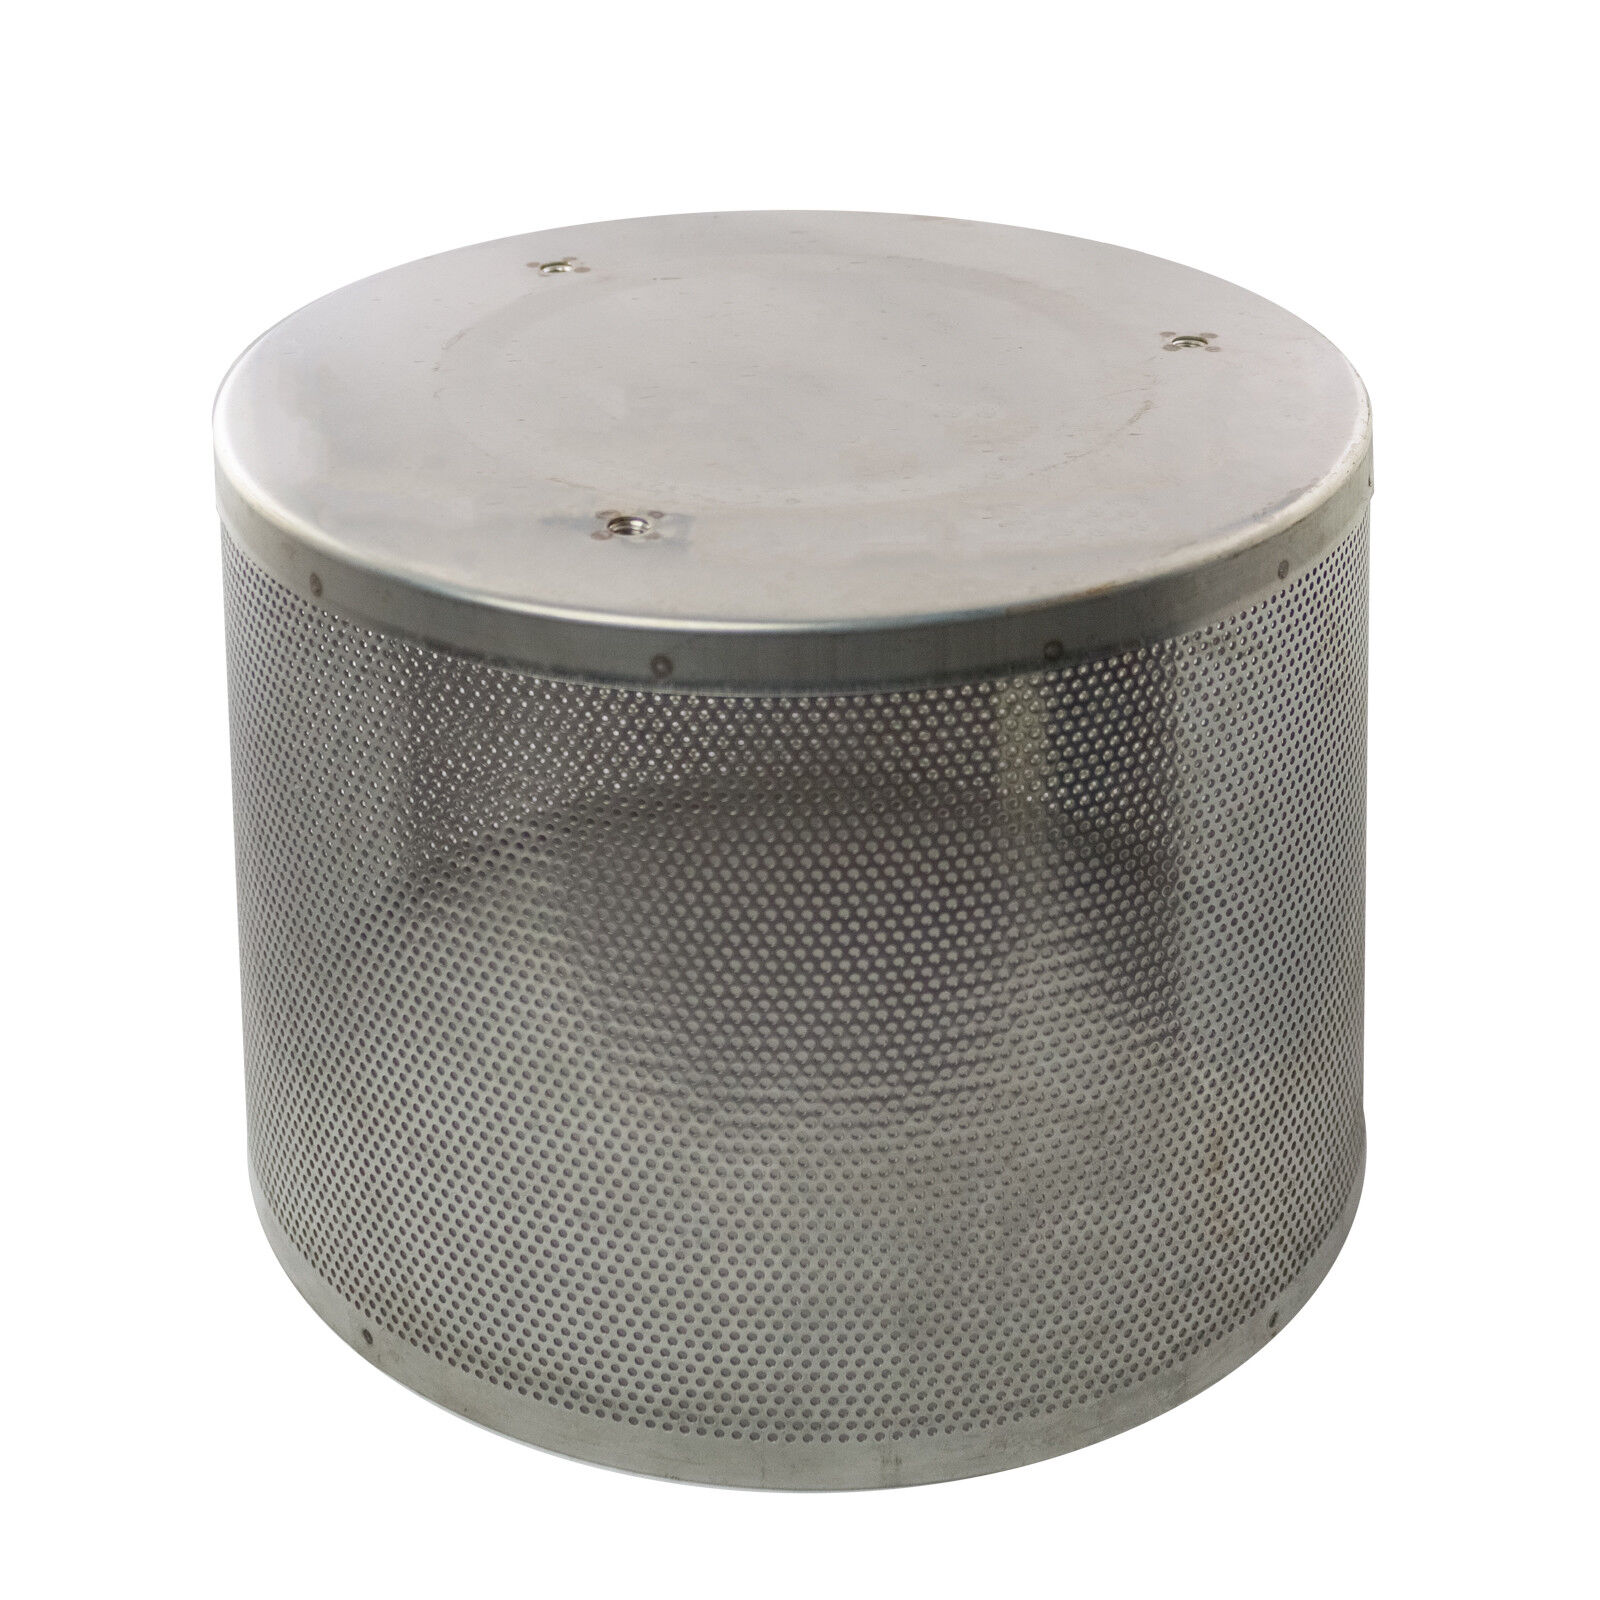 details about flame screen mesh grill for mushroom type patio heaters